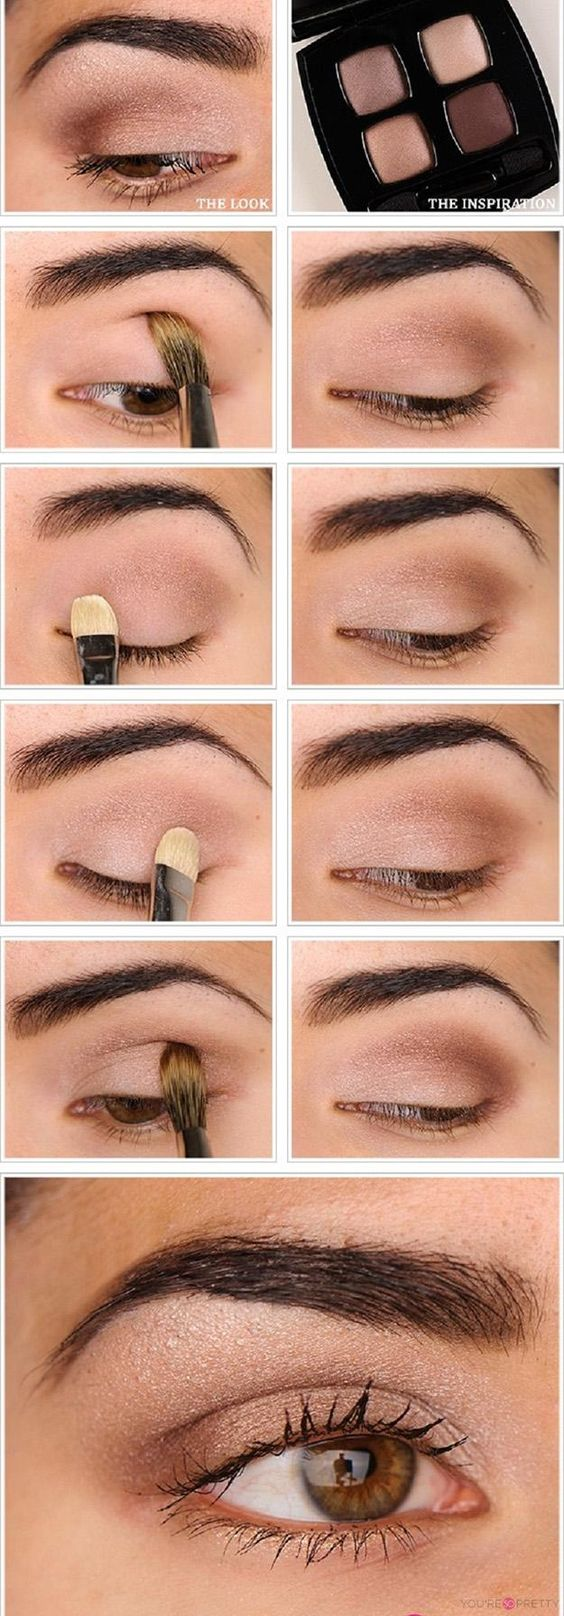 natural-eye-makeup via